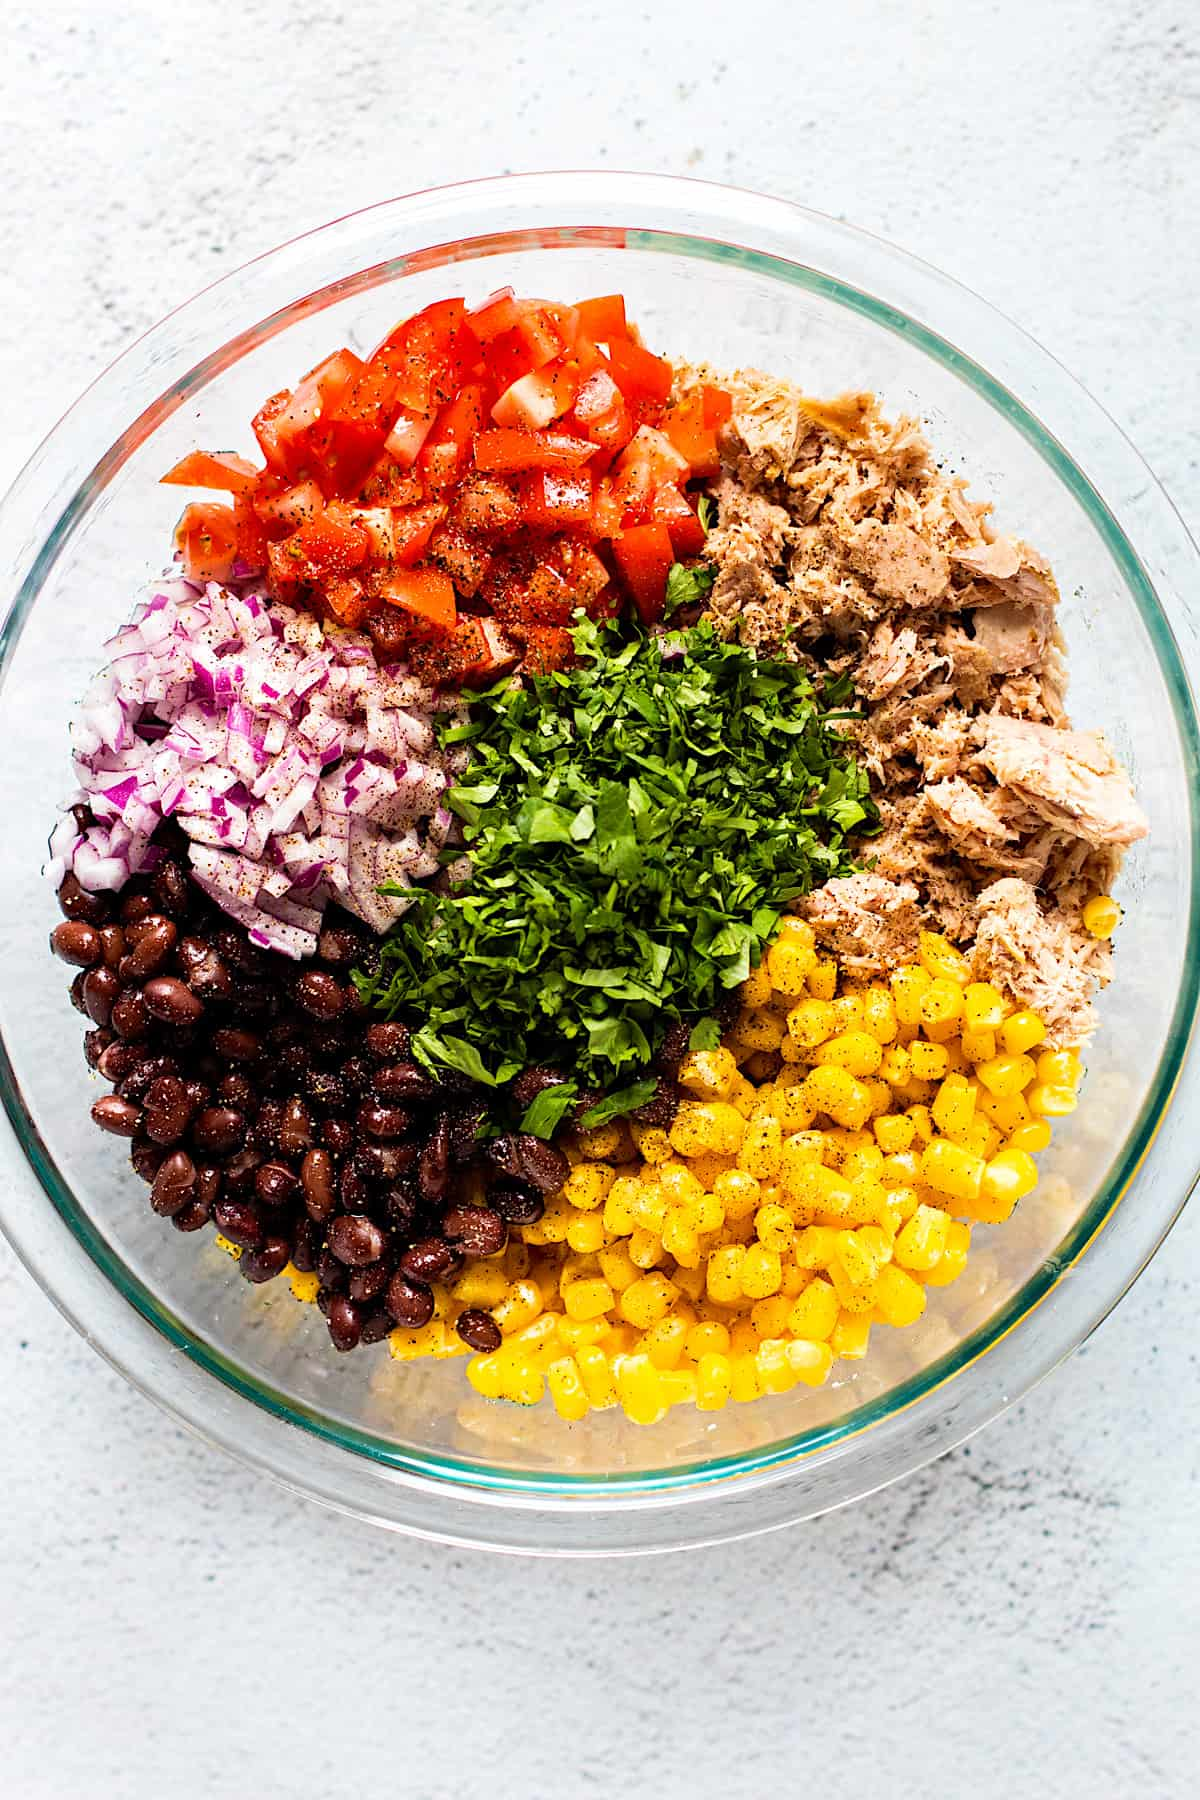 Ingredients for tuna salad in a bowl.